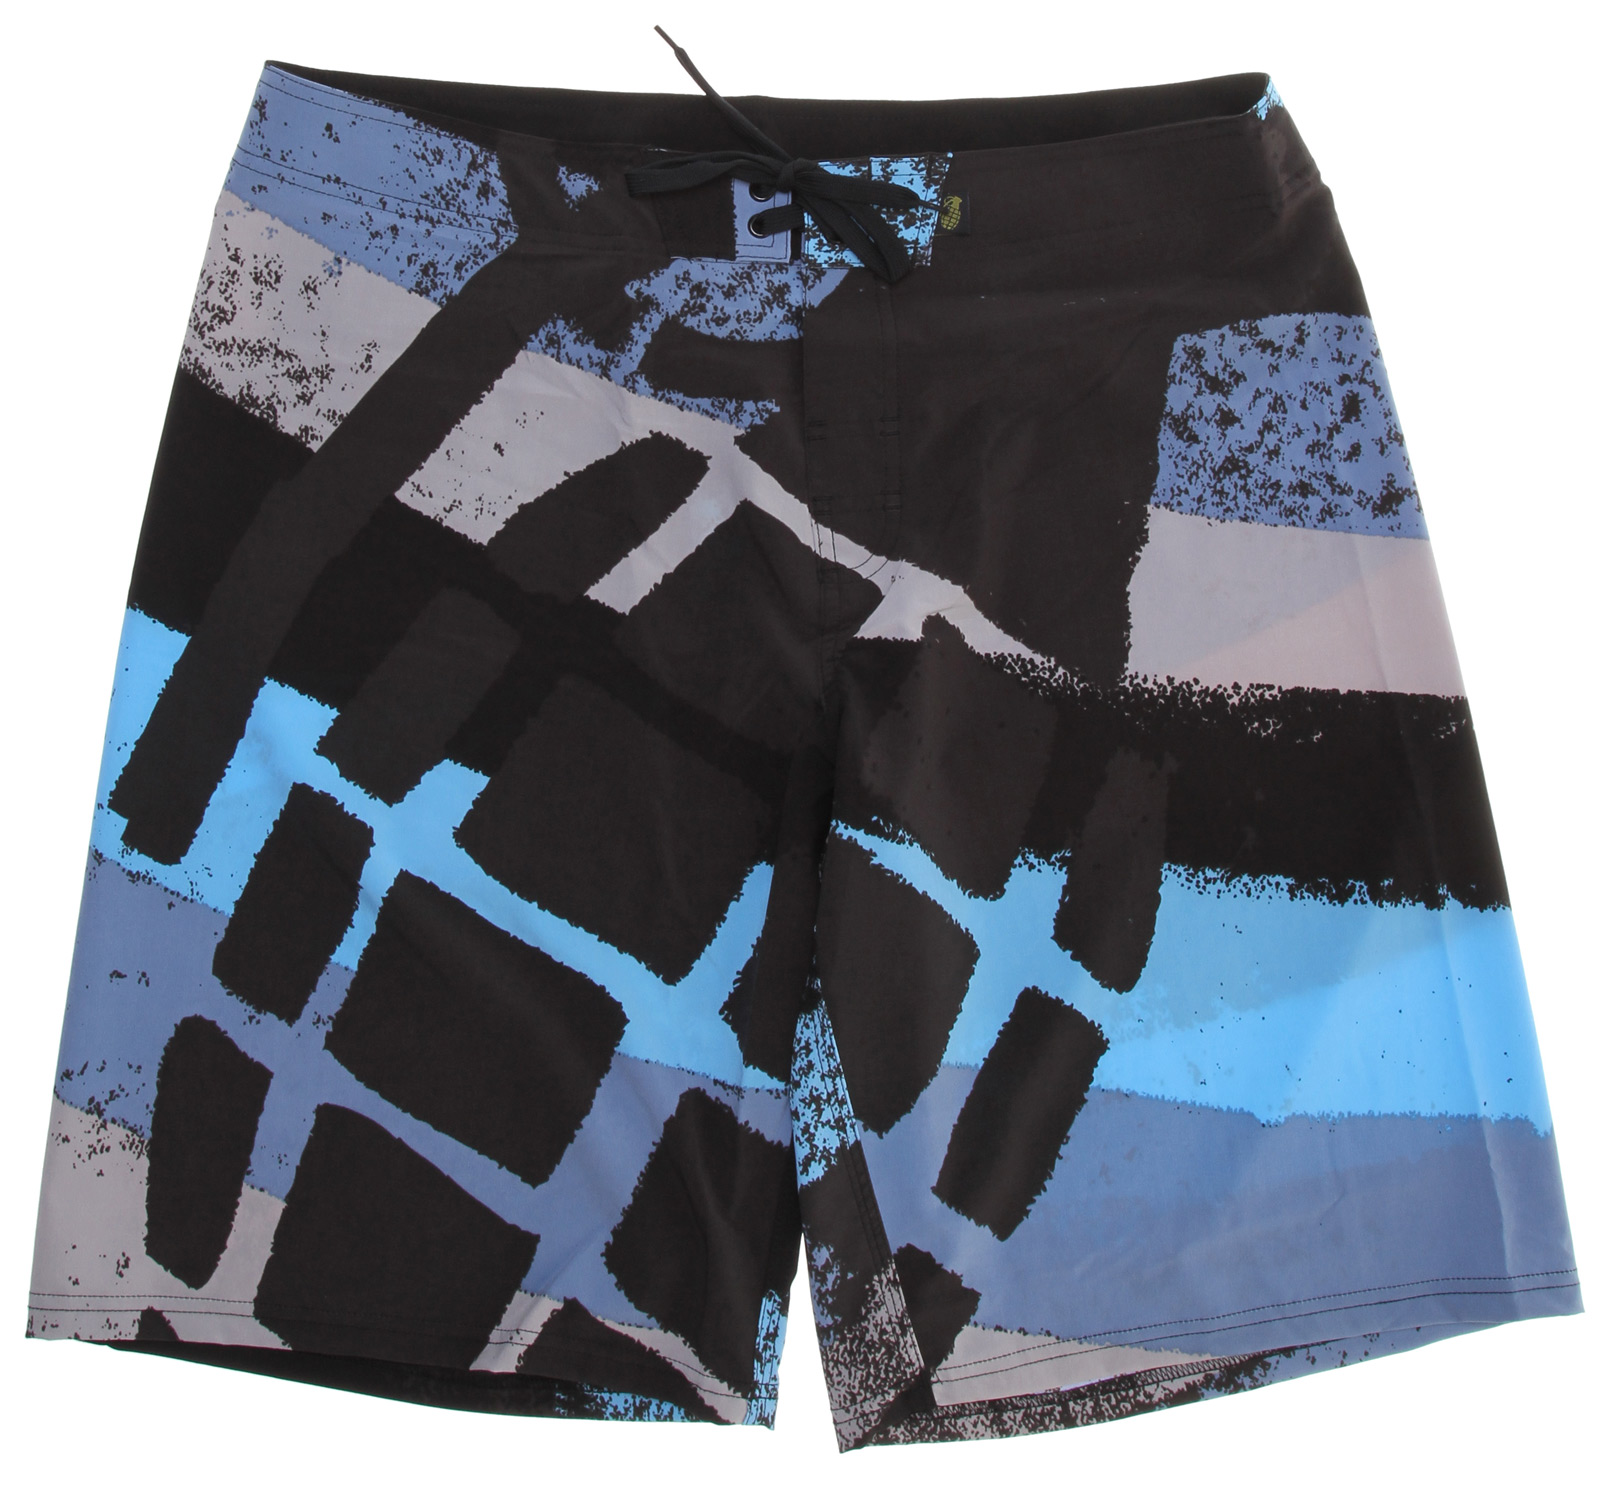 Surf Key Features of the Grenade Wave Boardshorts: 83% polyester/17% spandex Drawstring fit 4 way stretch - $34.95